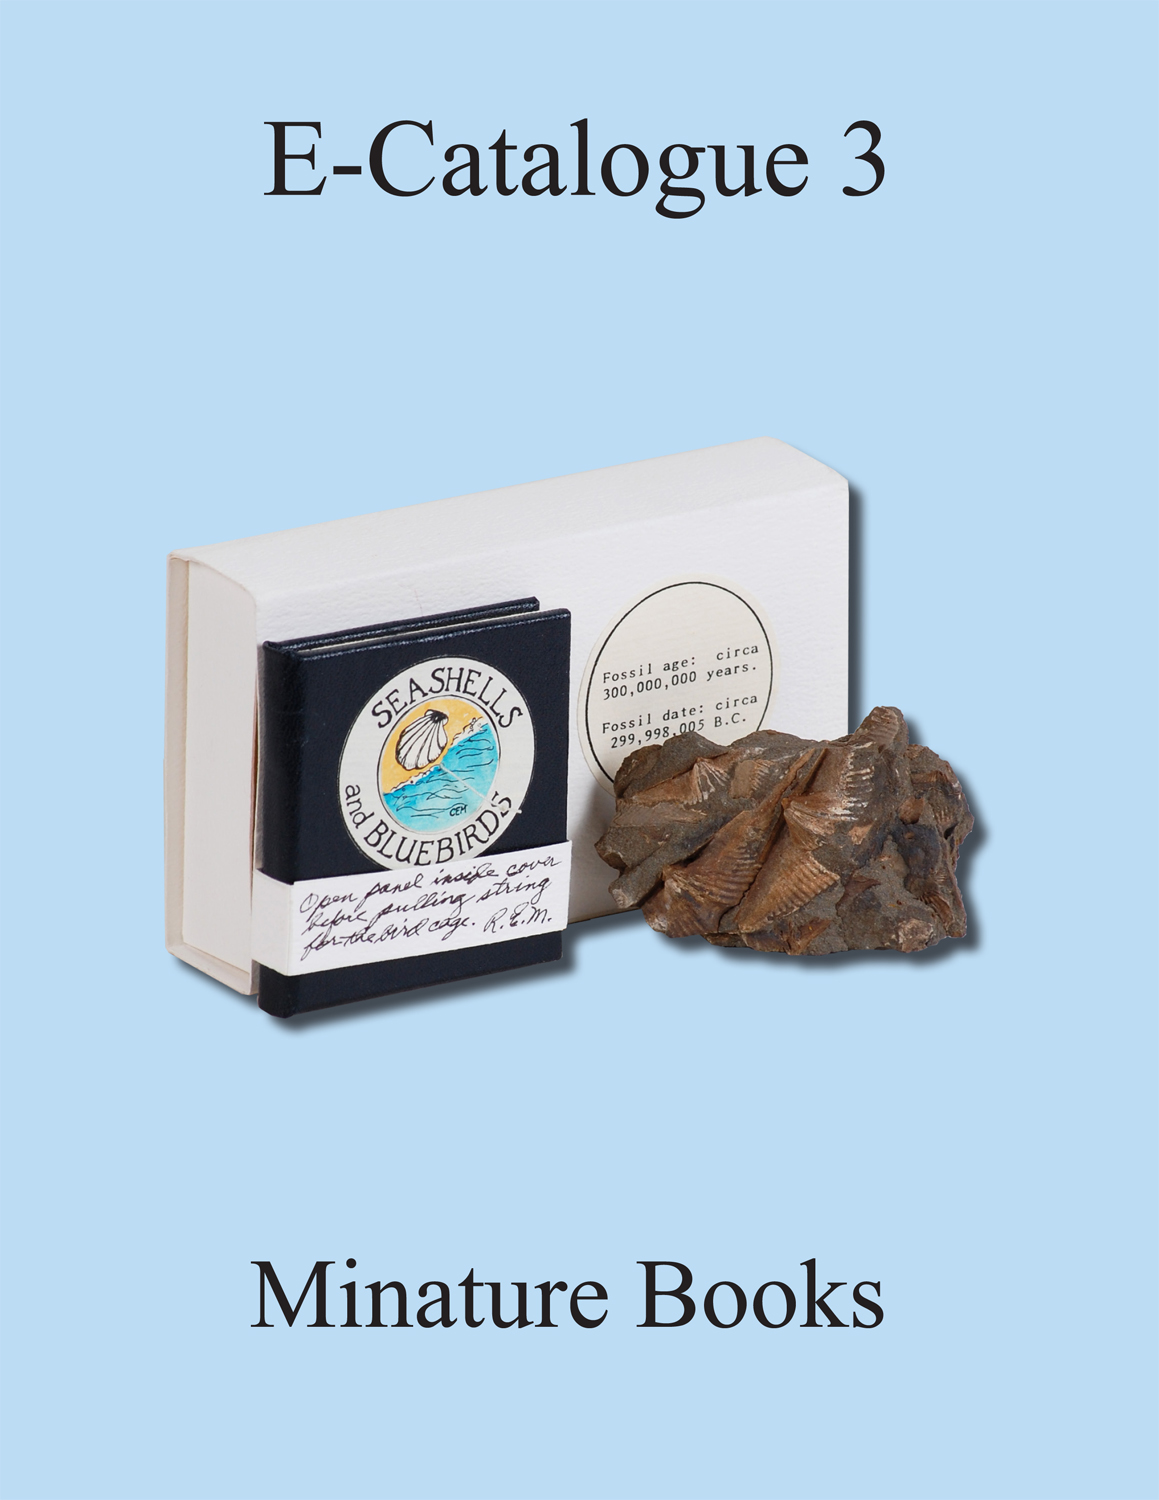 E-Catalogue 03 – Miniature Books